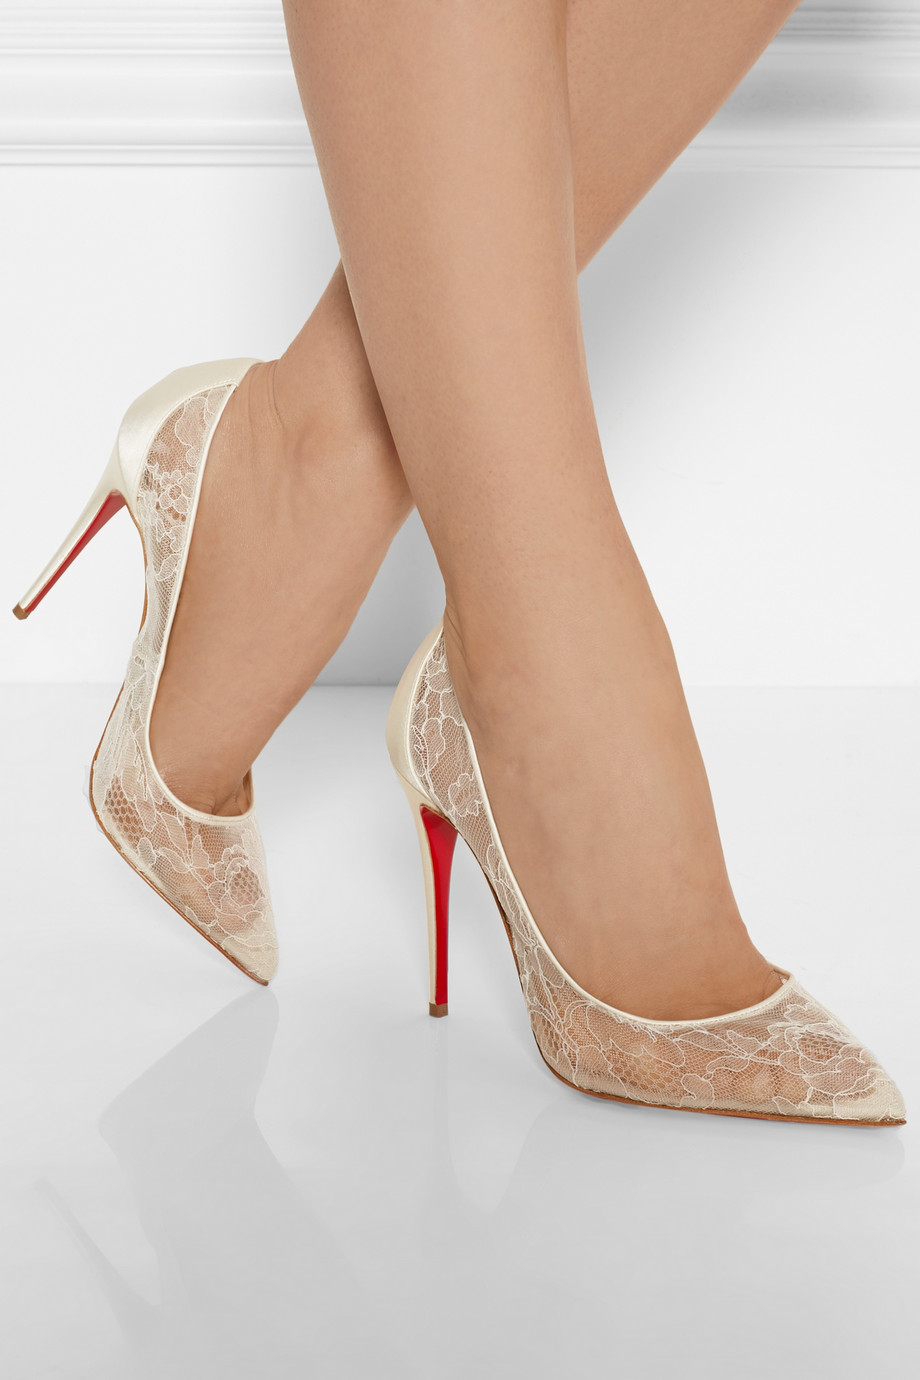 5bdc53f6246e Lyst - Christian Louboutin Follies 100 Lace And Satin Pumps in Natural